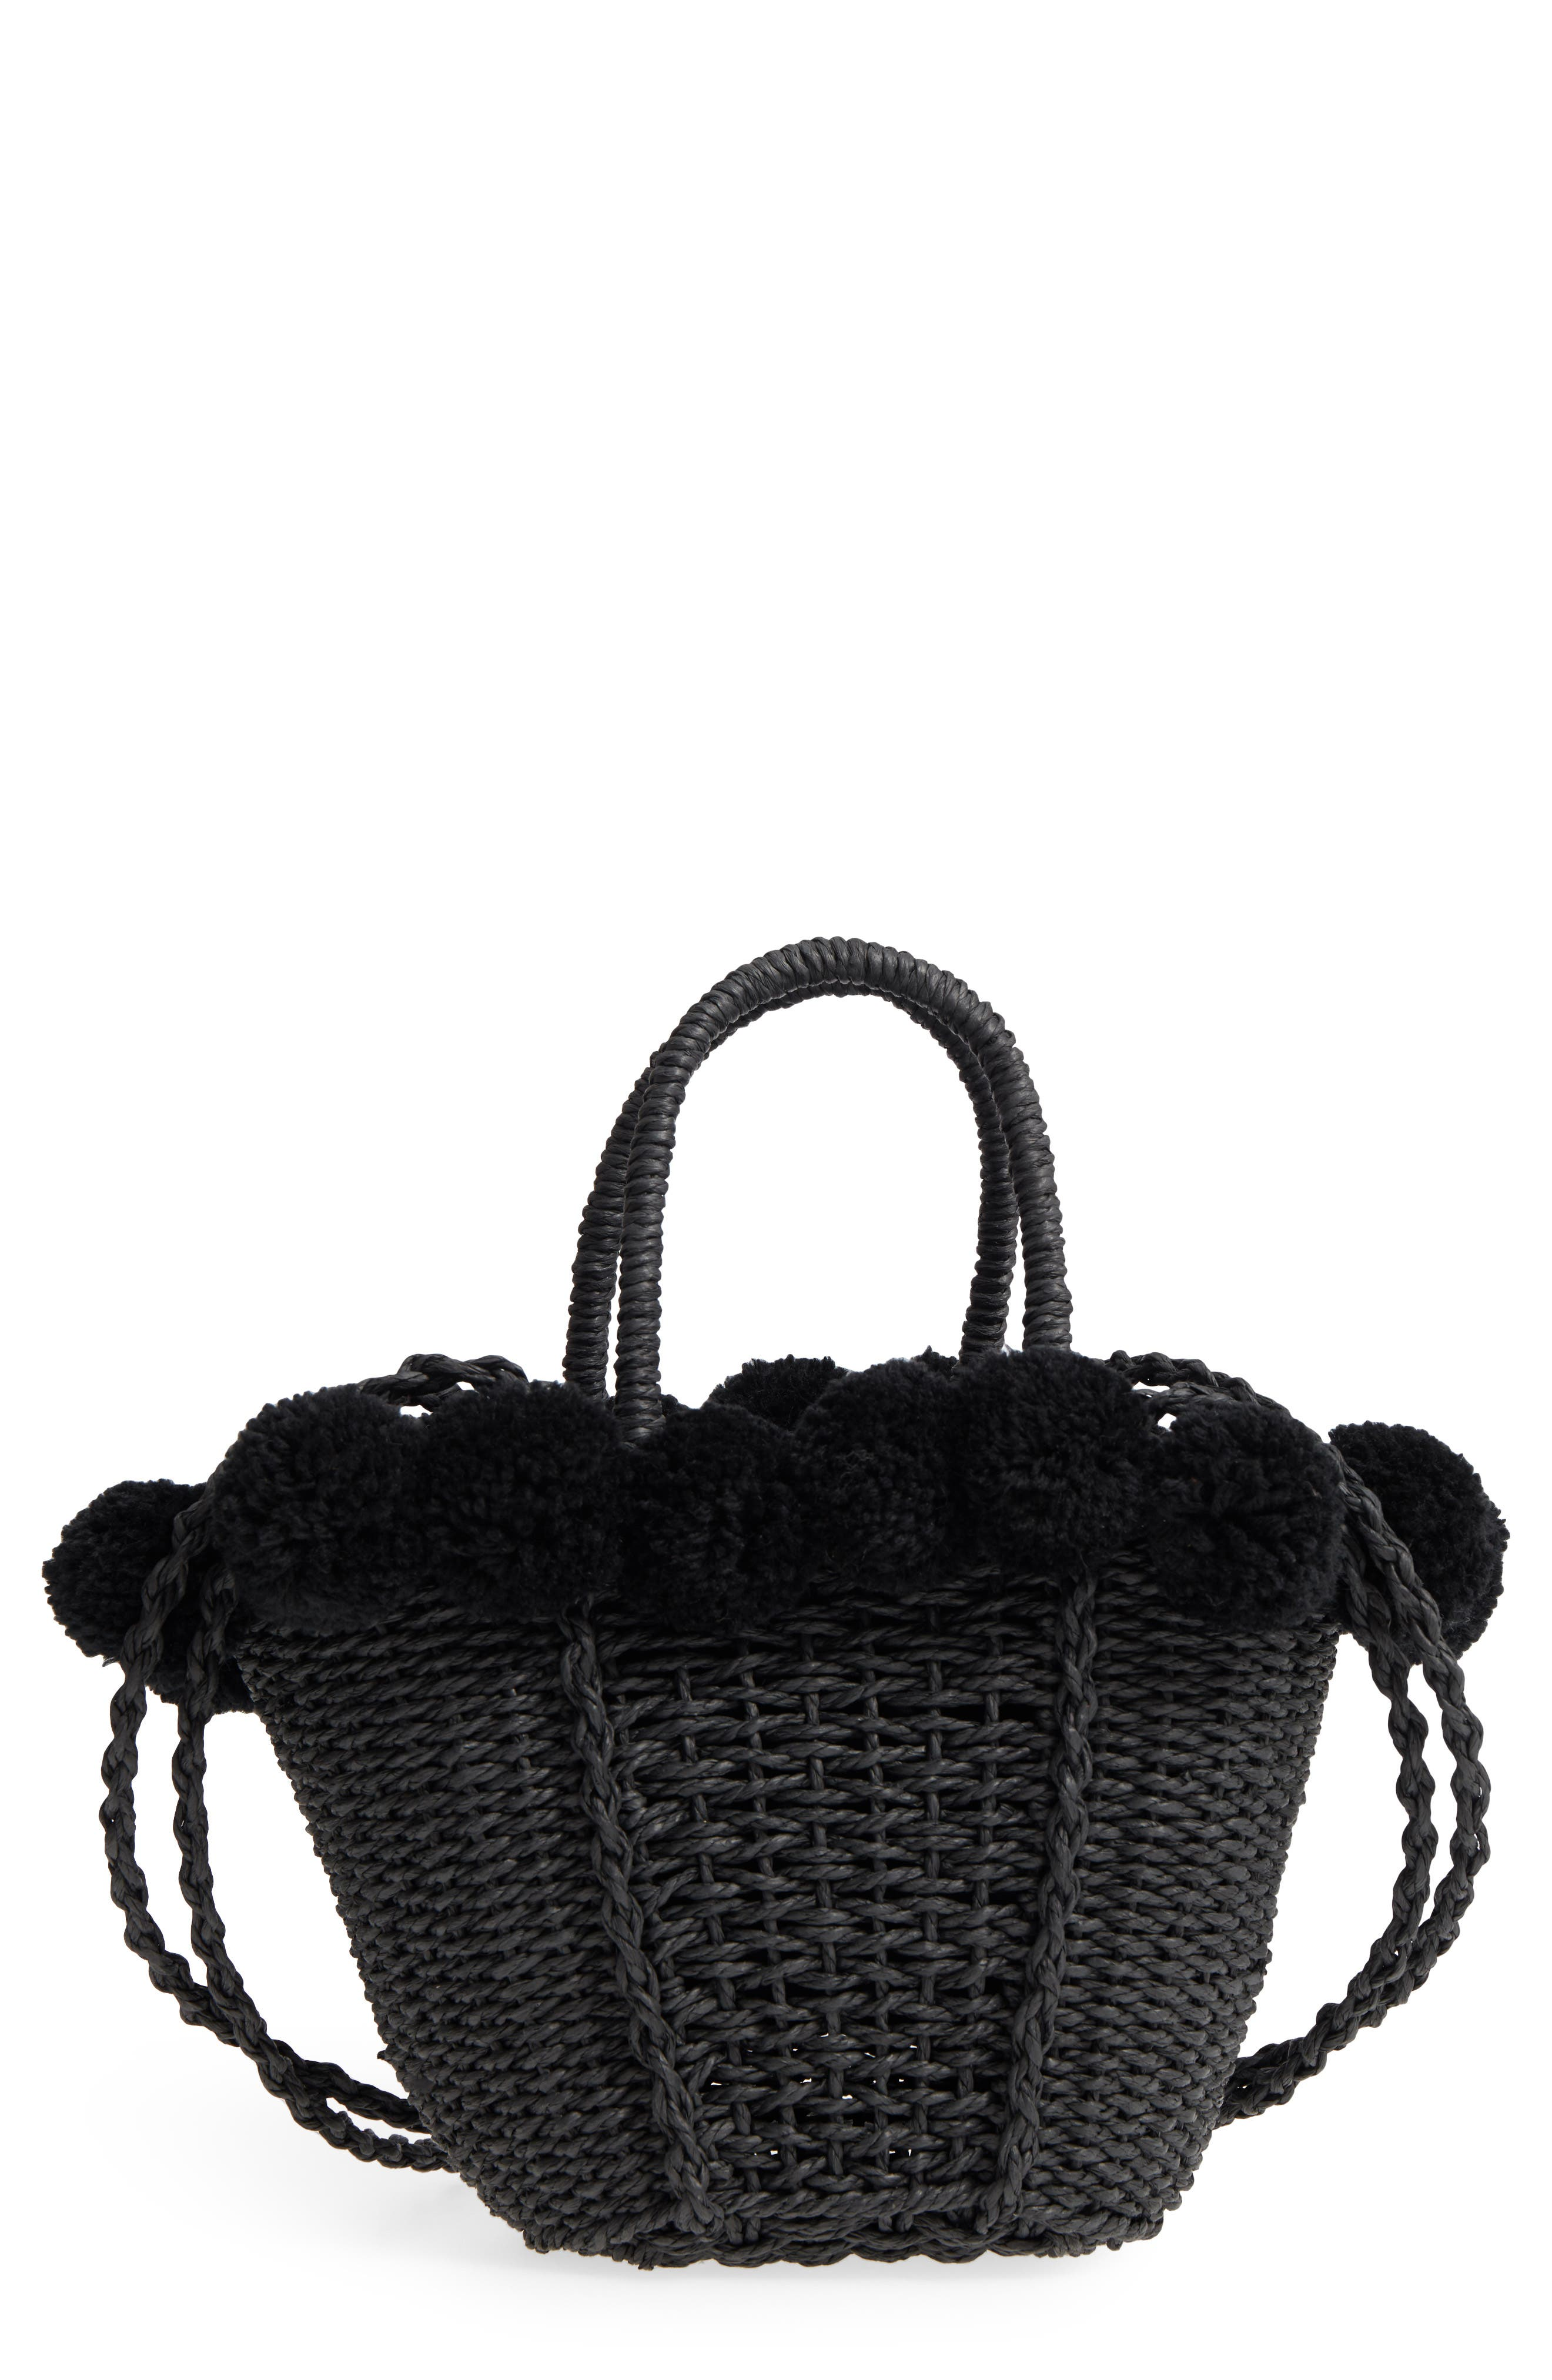 Sia Pom Straw Shopper Bag,                             Main thumbnail 1, color,                             001